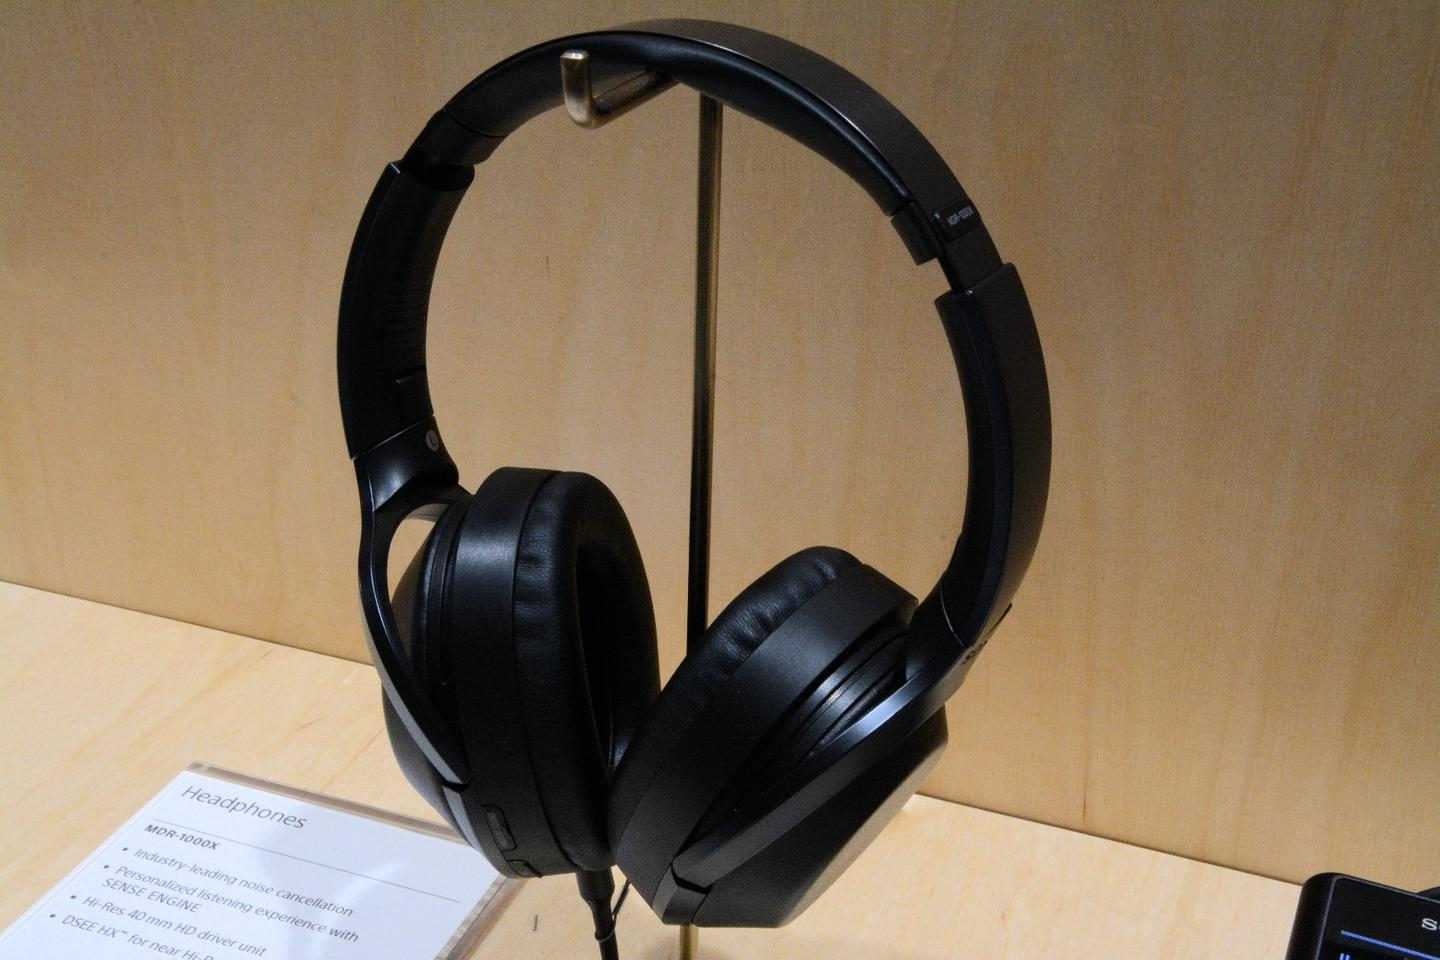 The MDR-1000X headphones feature a Personalized NC Optimzer system, which reportedly takes into account the shape of the wearer's head to provide better sound and noise-cancellation